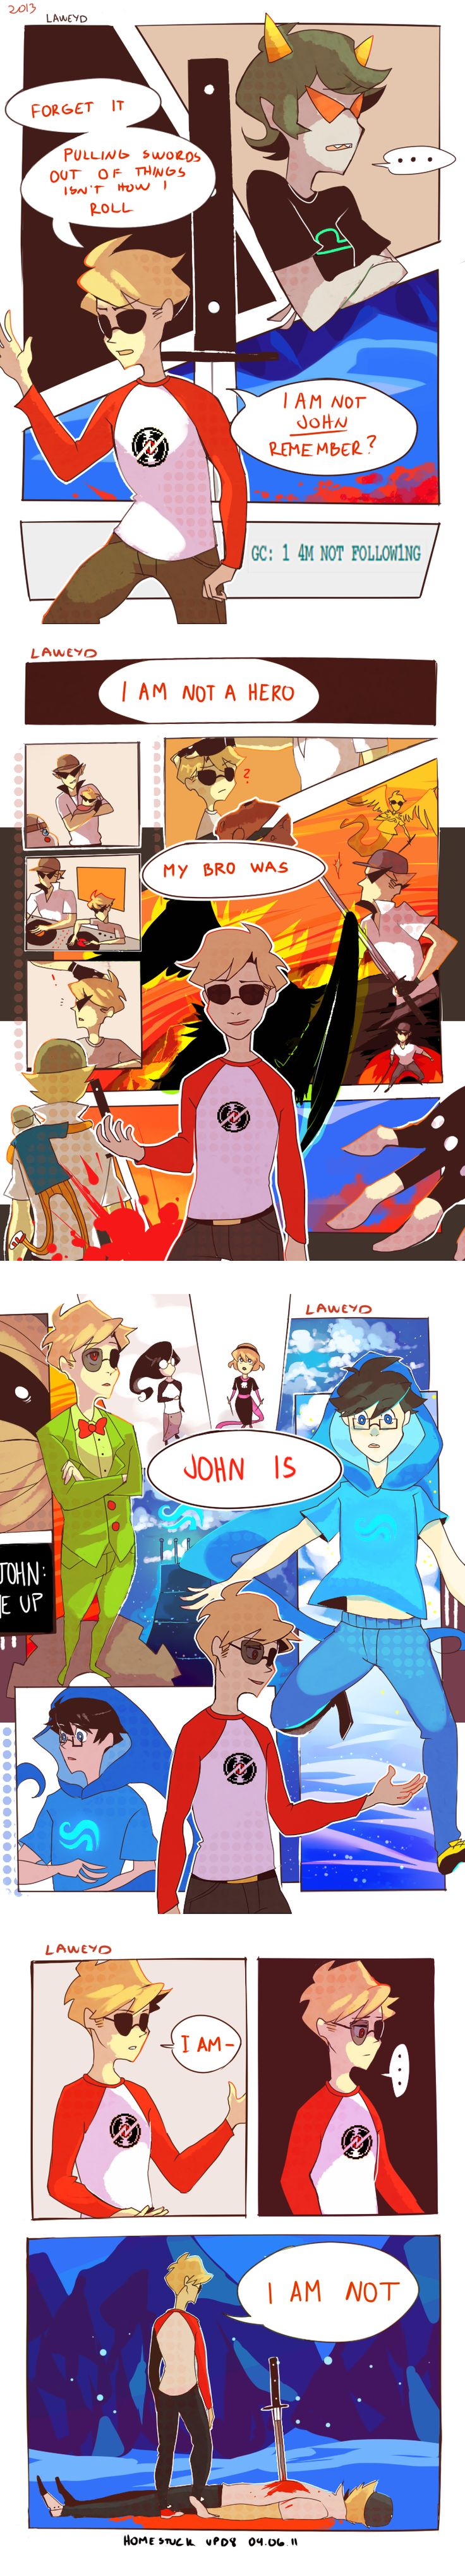 homestuck comic (upd8- 04.06.11)- i am not a hero by LaWeyD.deviantart.com on @deviantART